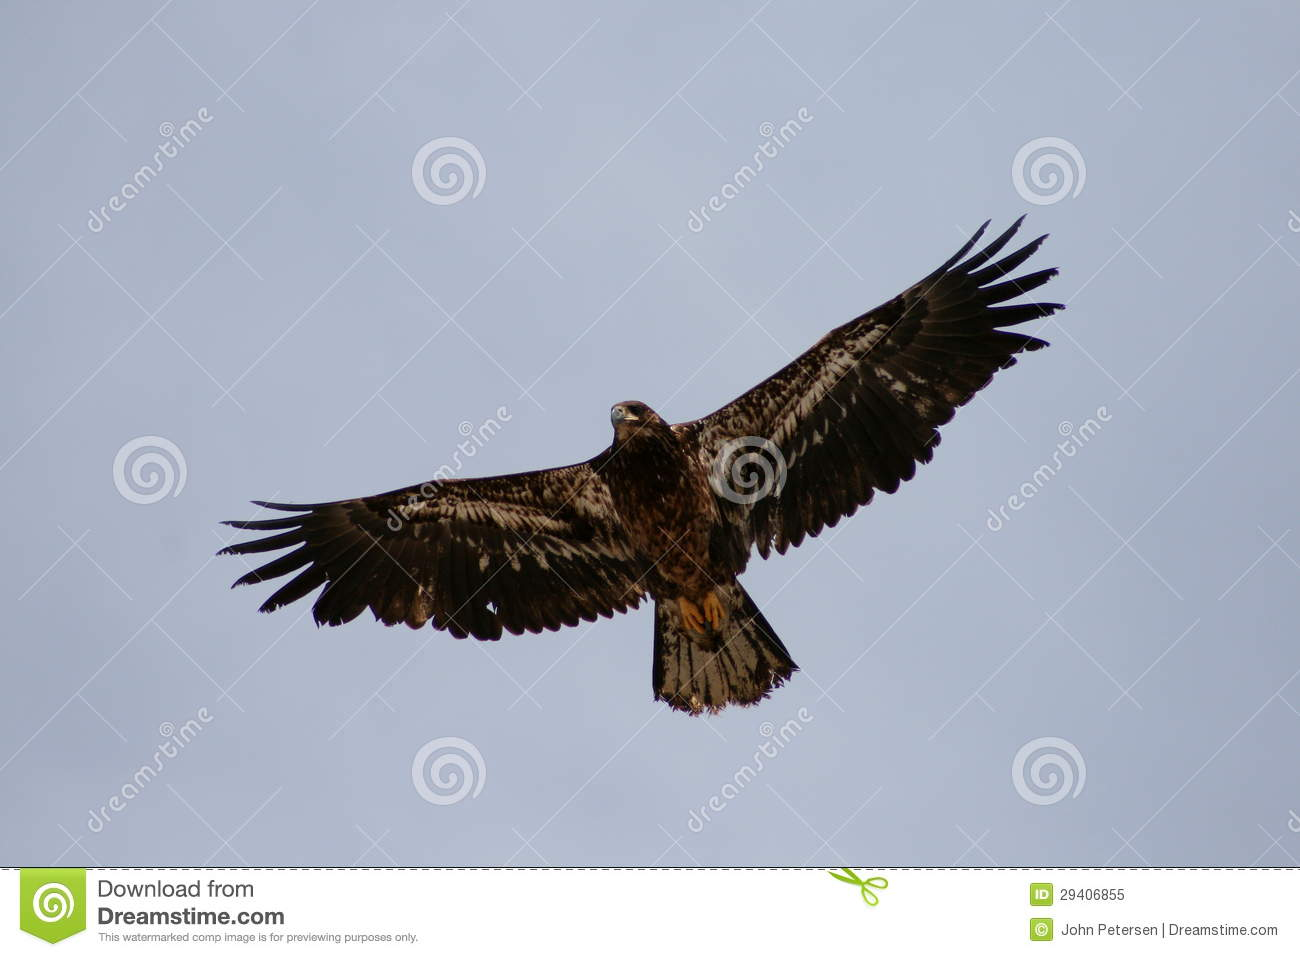 Flying Golden Eagle Royalty Free Stock Photo - Image: 29406855